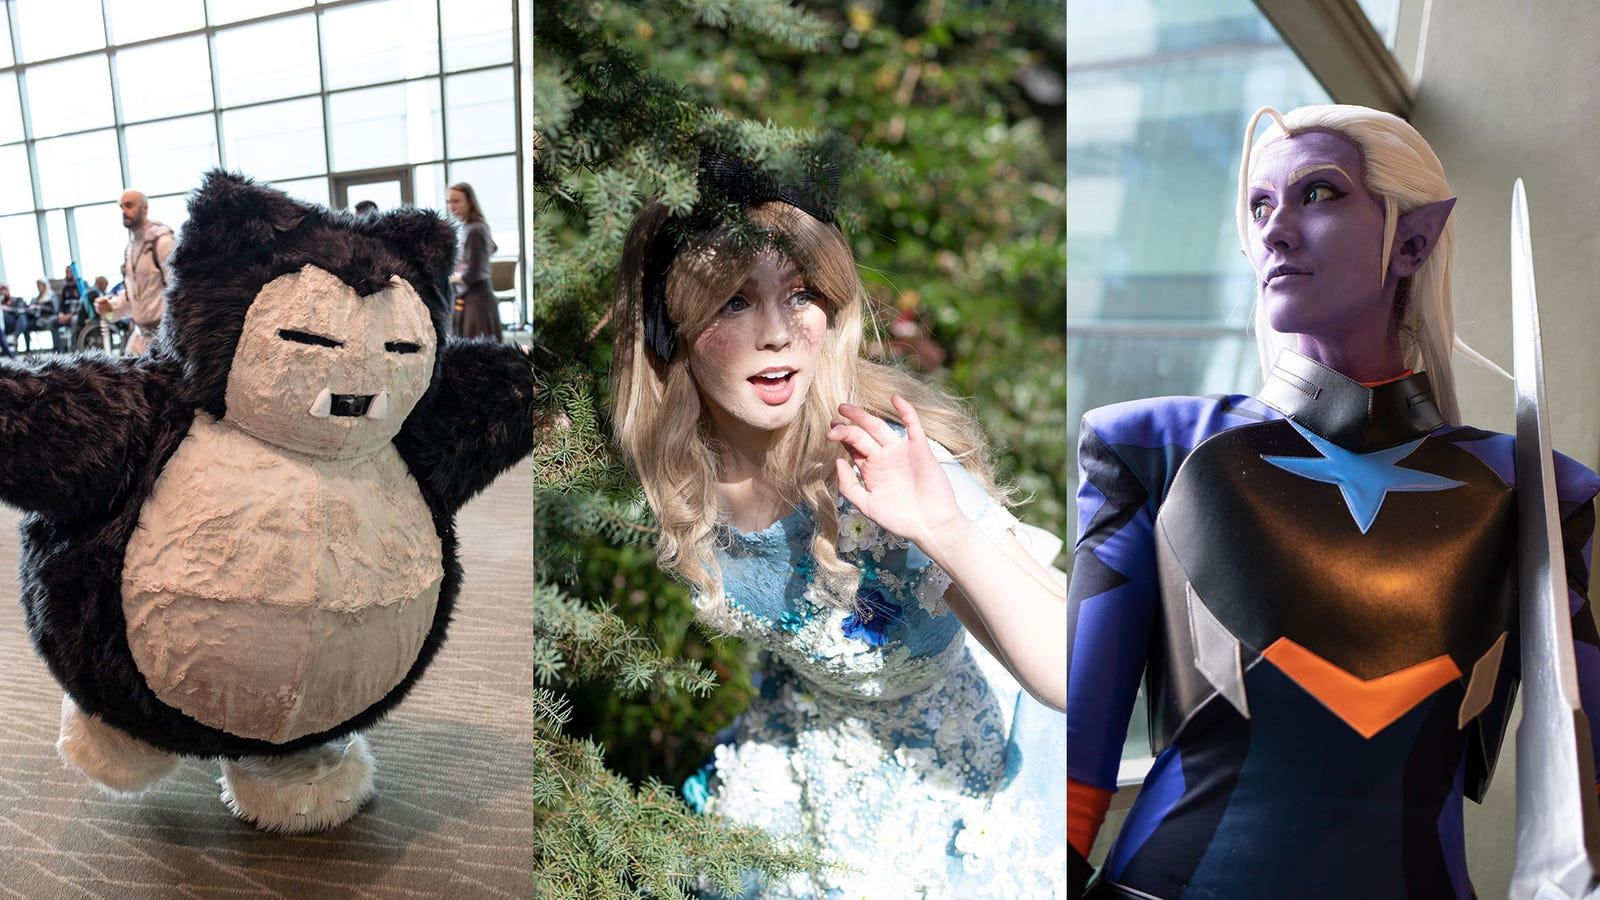 Our Favorite Cosplay From Emerald City Comic Con 2019